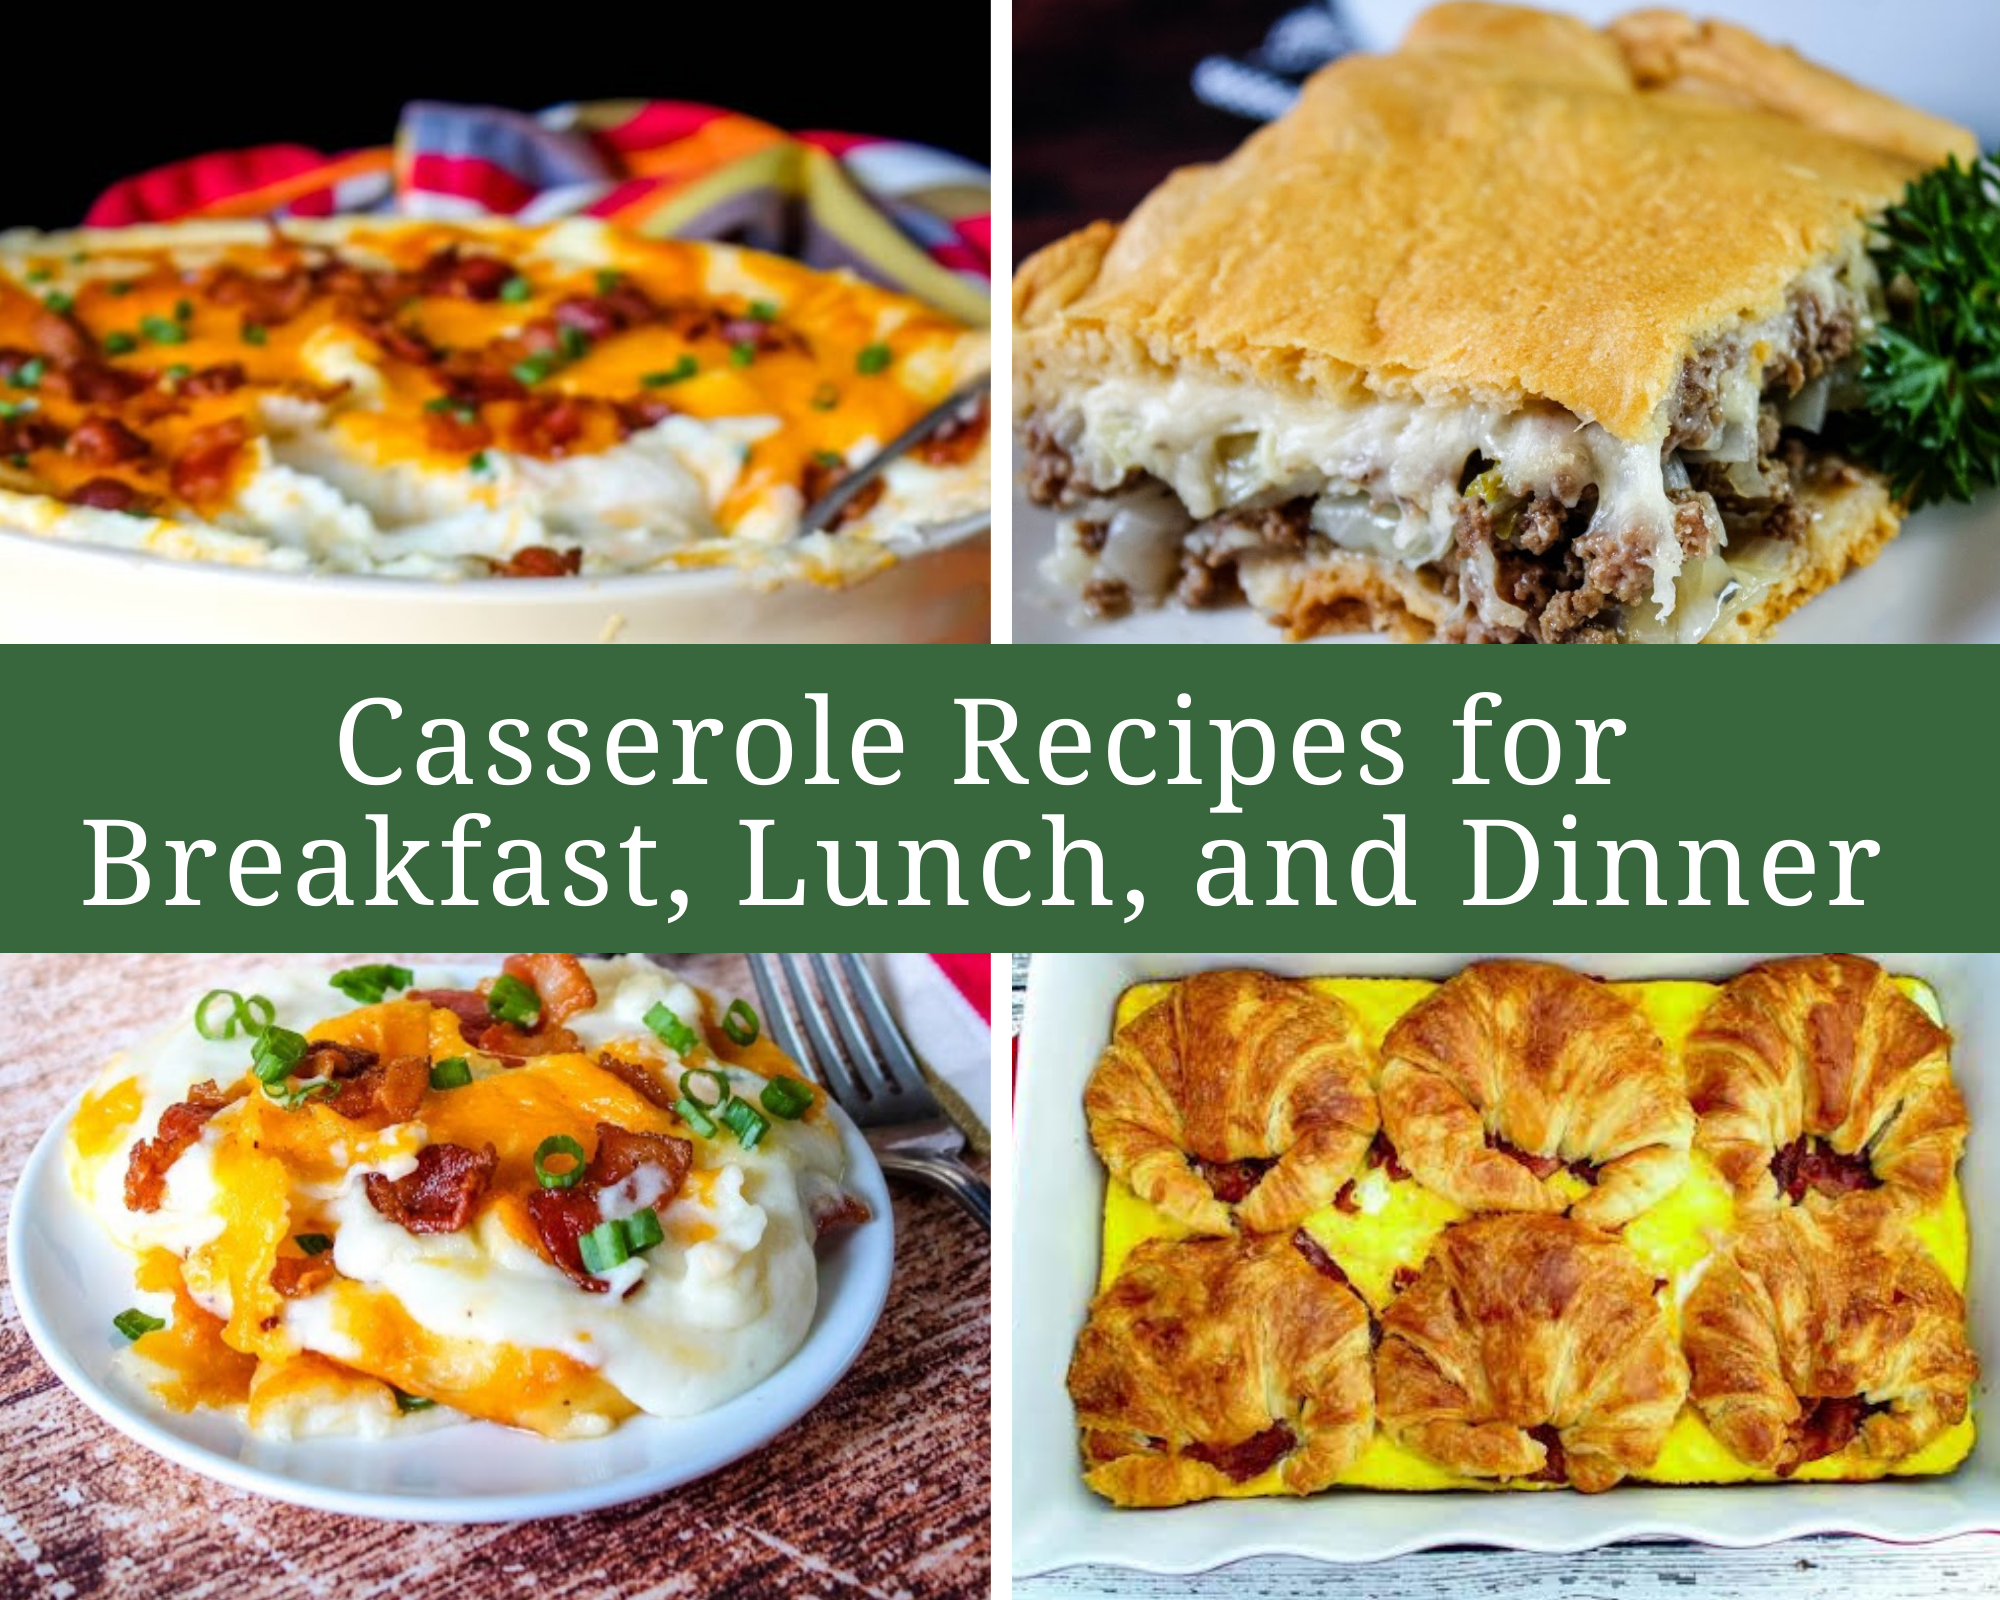 casserole recipes for breakfast, lunch and dinner